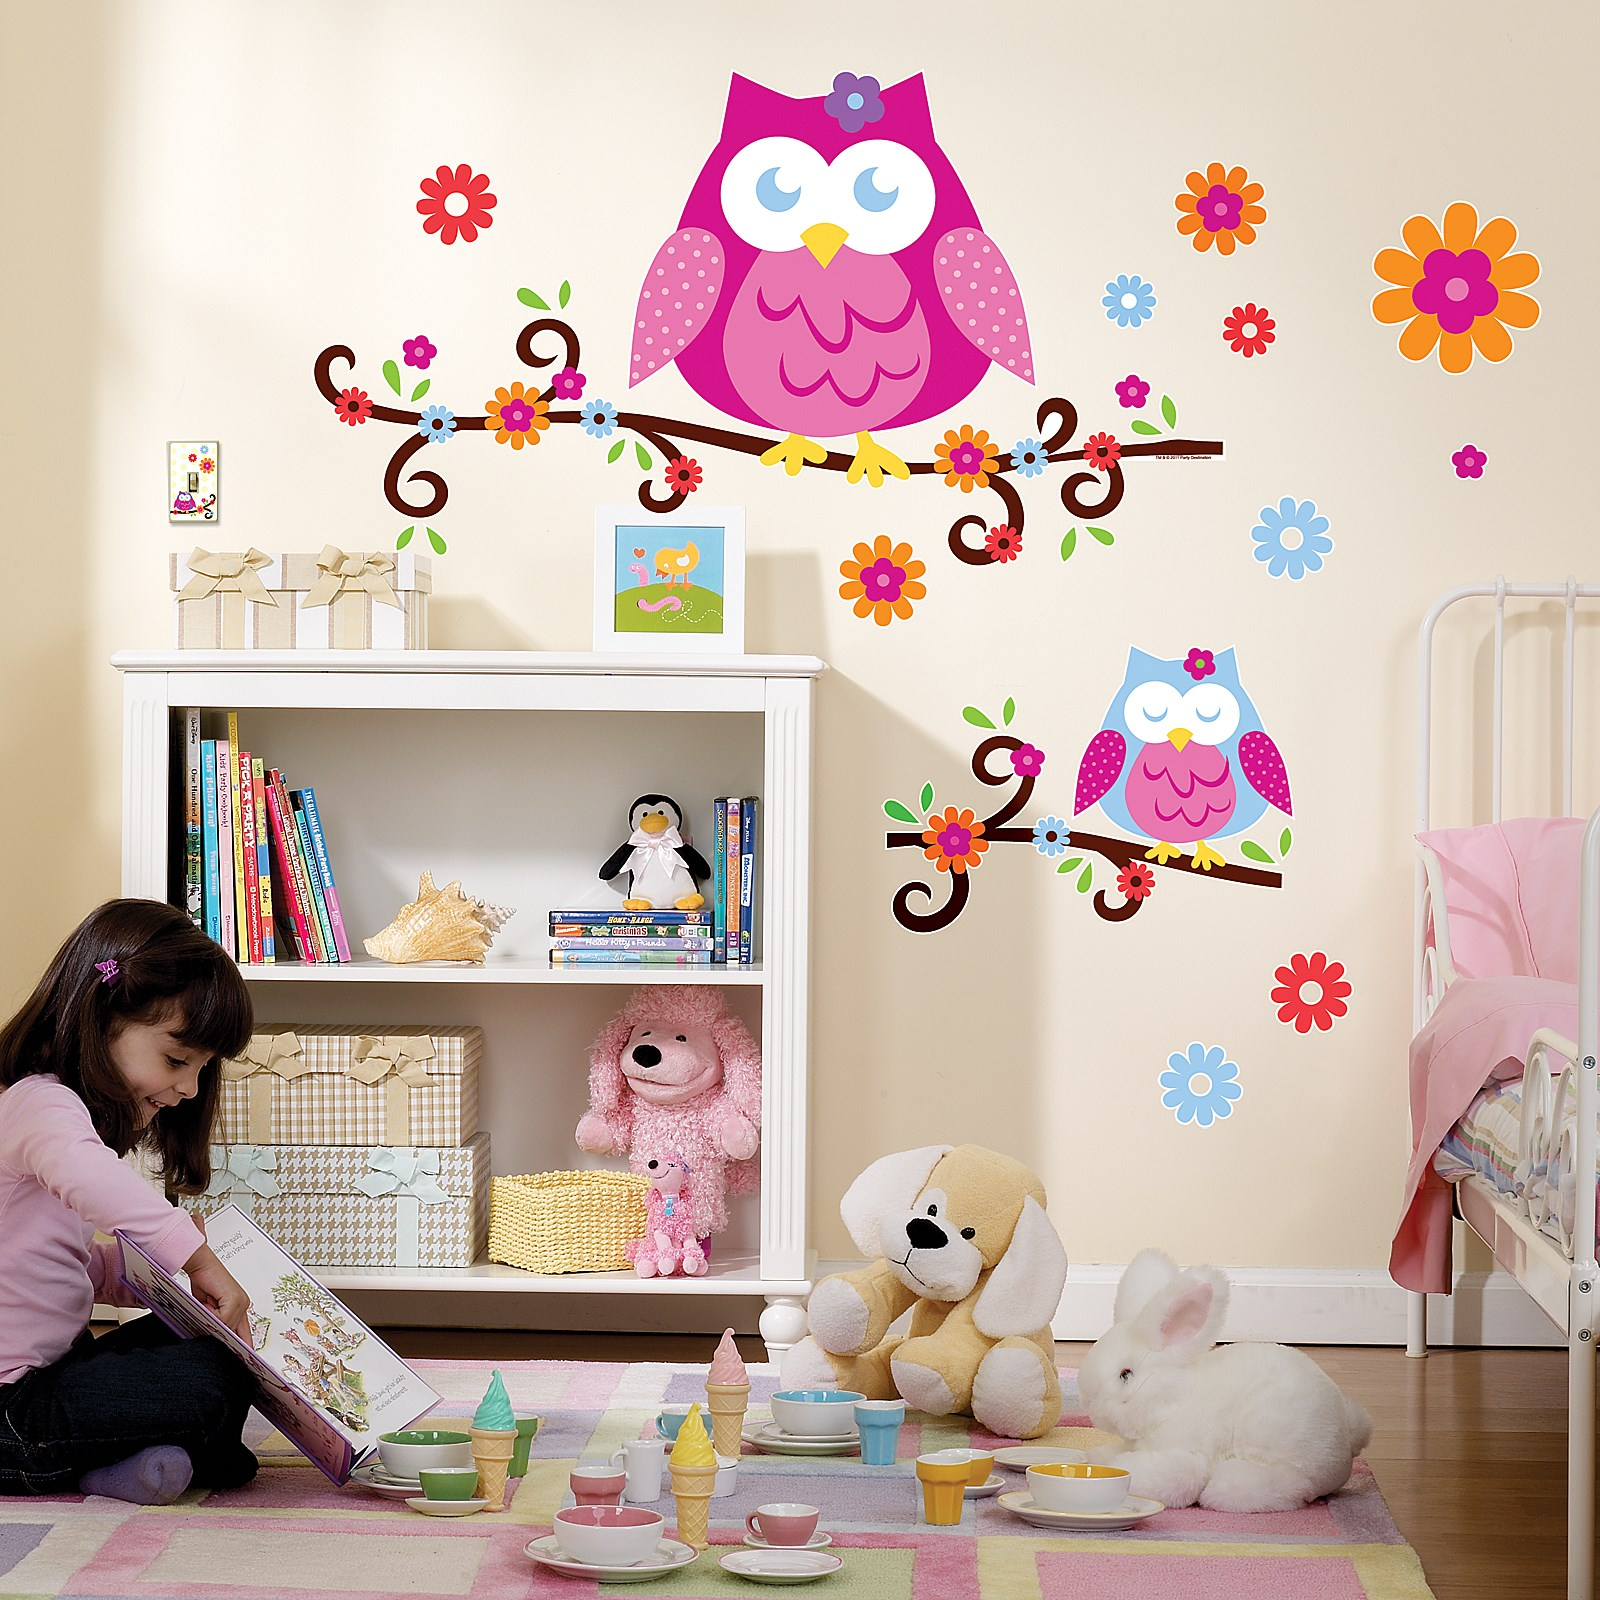 owl blossom giant wall decals  birthdayexpresscom - default image  owl blossom giant wall decals